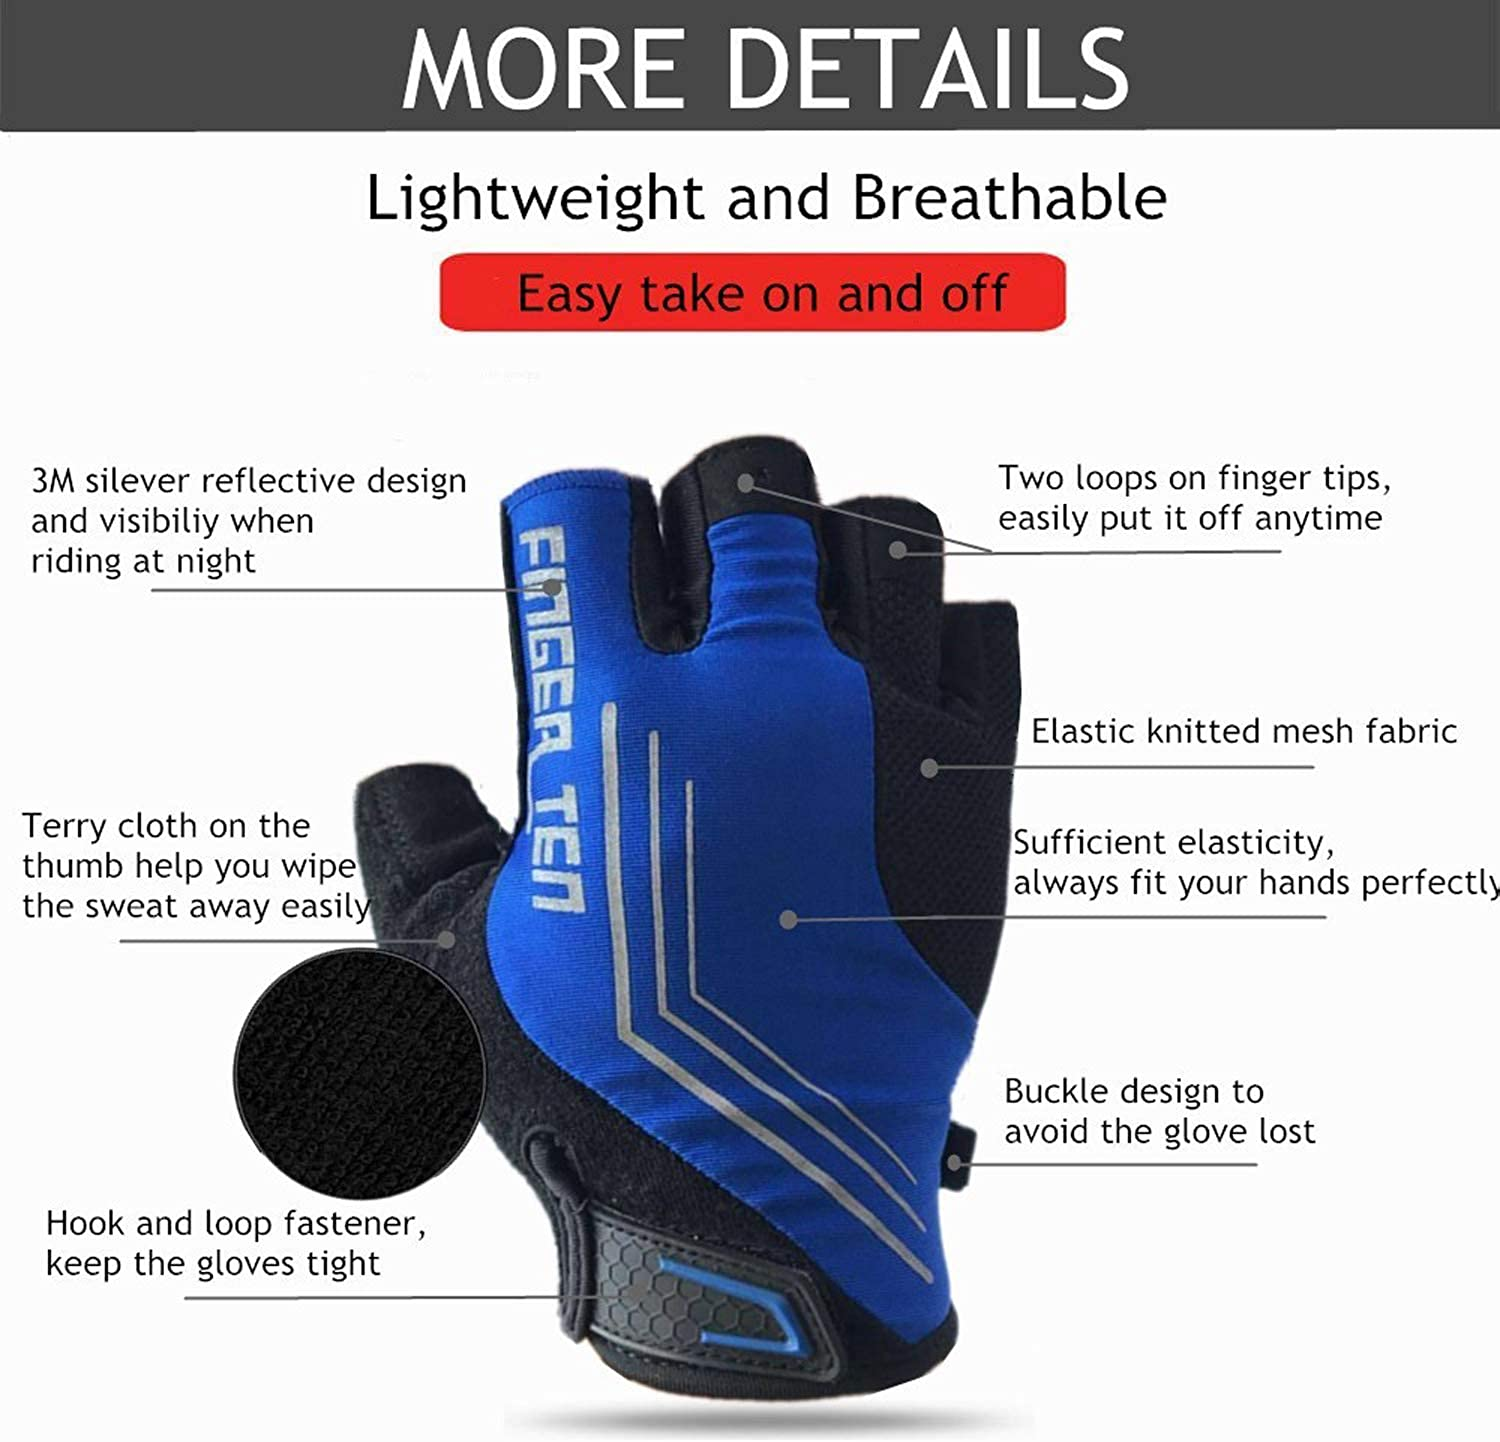 Cycling Gloves Men Half Finger Anti Slip Rode Bicycle Bike Mountain Biking Pair Gel Padded Breathable Shock Absorbing Cycle Glove for Motorcycle MTB Outdoor Sports